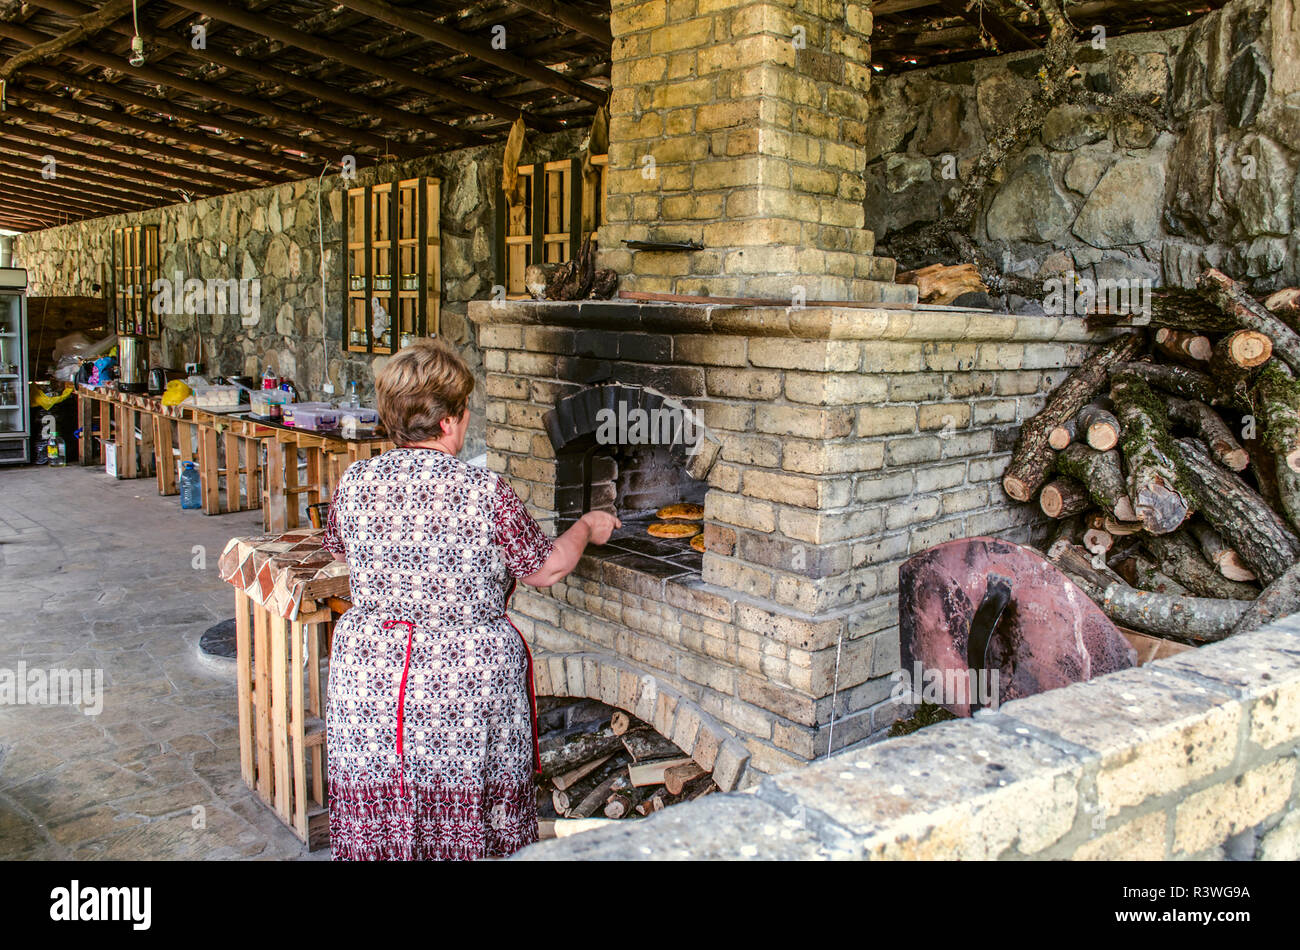 Armenische Küche Gata Brick Stove Stockfotos And Brick Stove Bilder Alamy